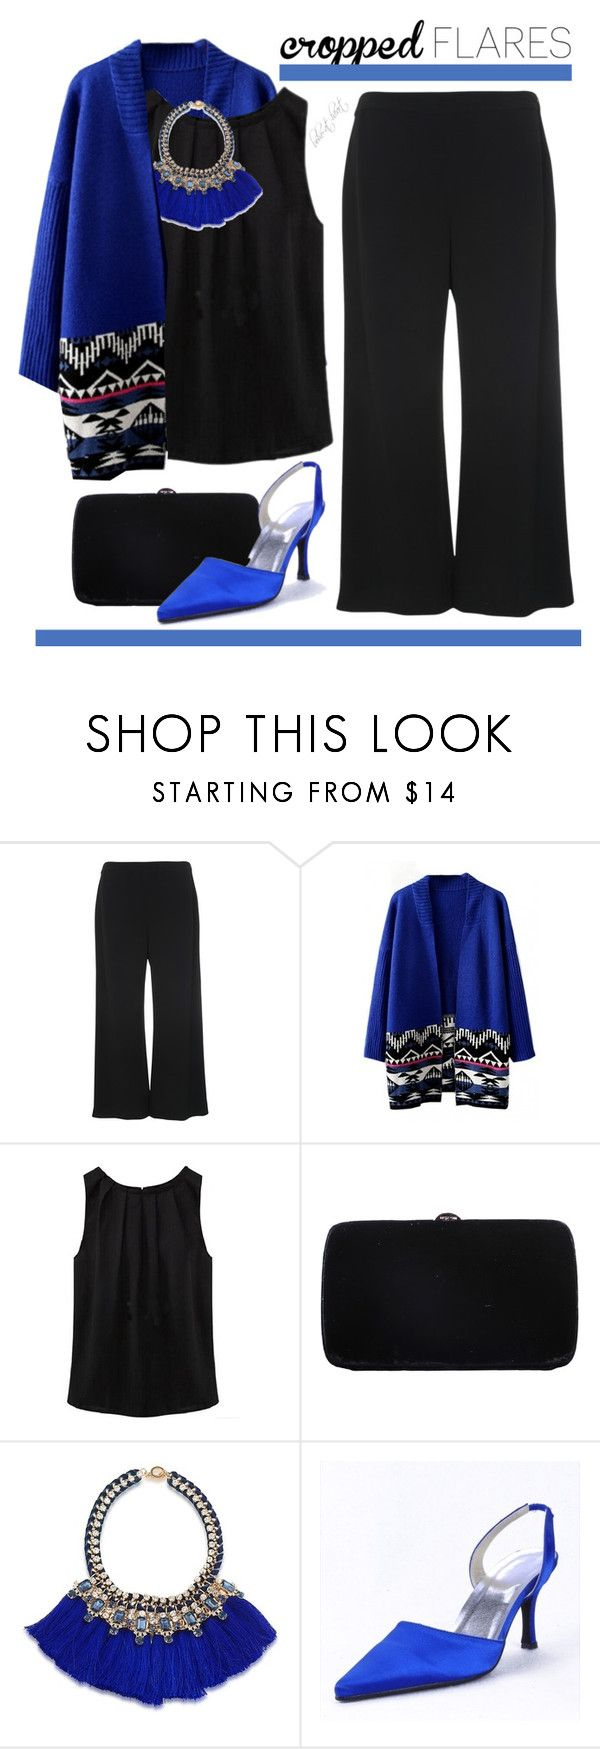 """""""Trend: Cropped Flares (BH 11)"""" by boho-at-heart ❤ liked on Polyvore featuring French Connection, WithChic, Sergio Rossi, Carolee and beautifulhalo"""